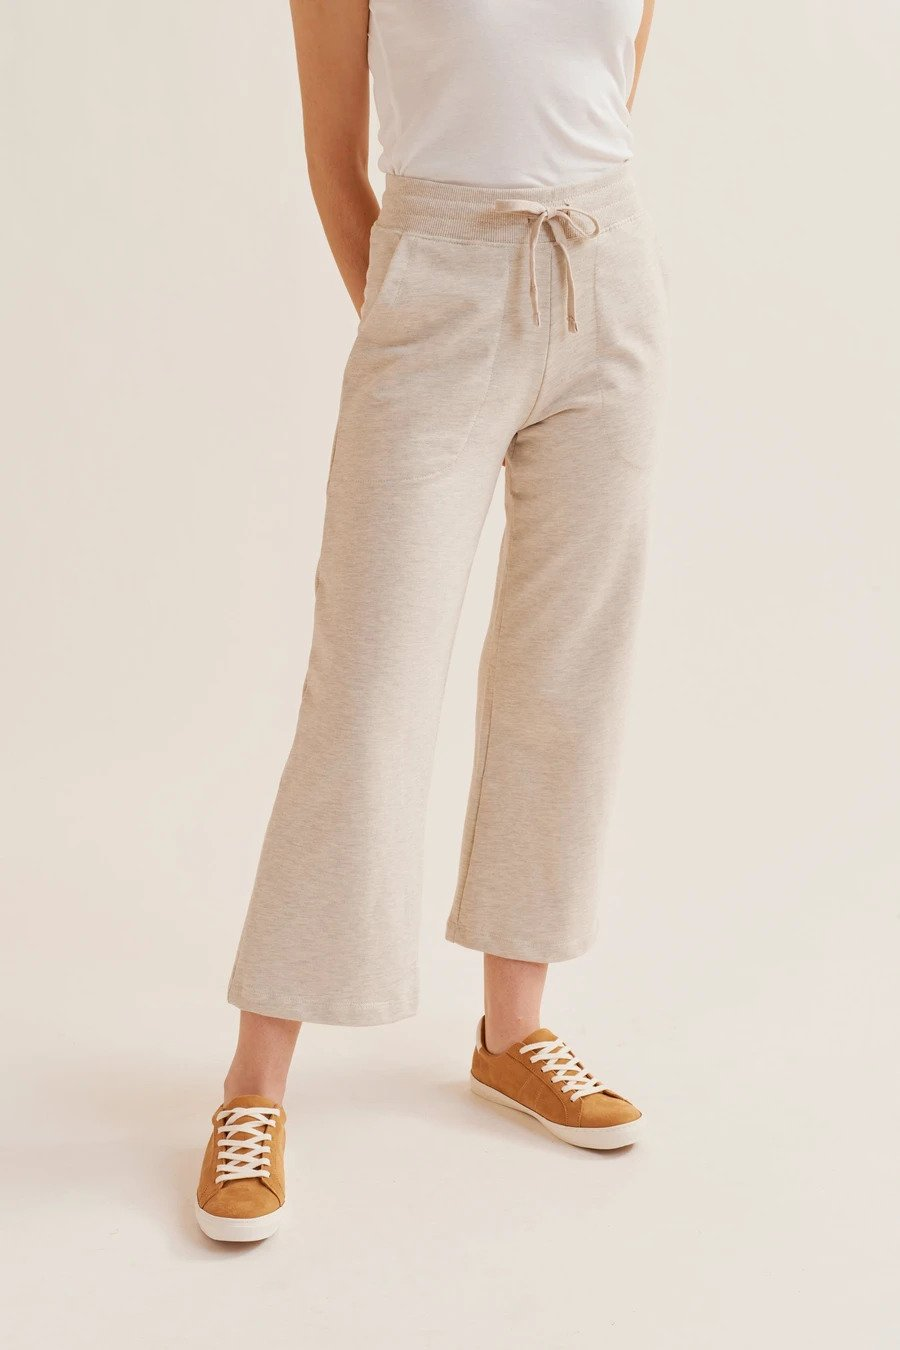 KOTN culotte sweatpants in Oat Melange